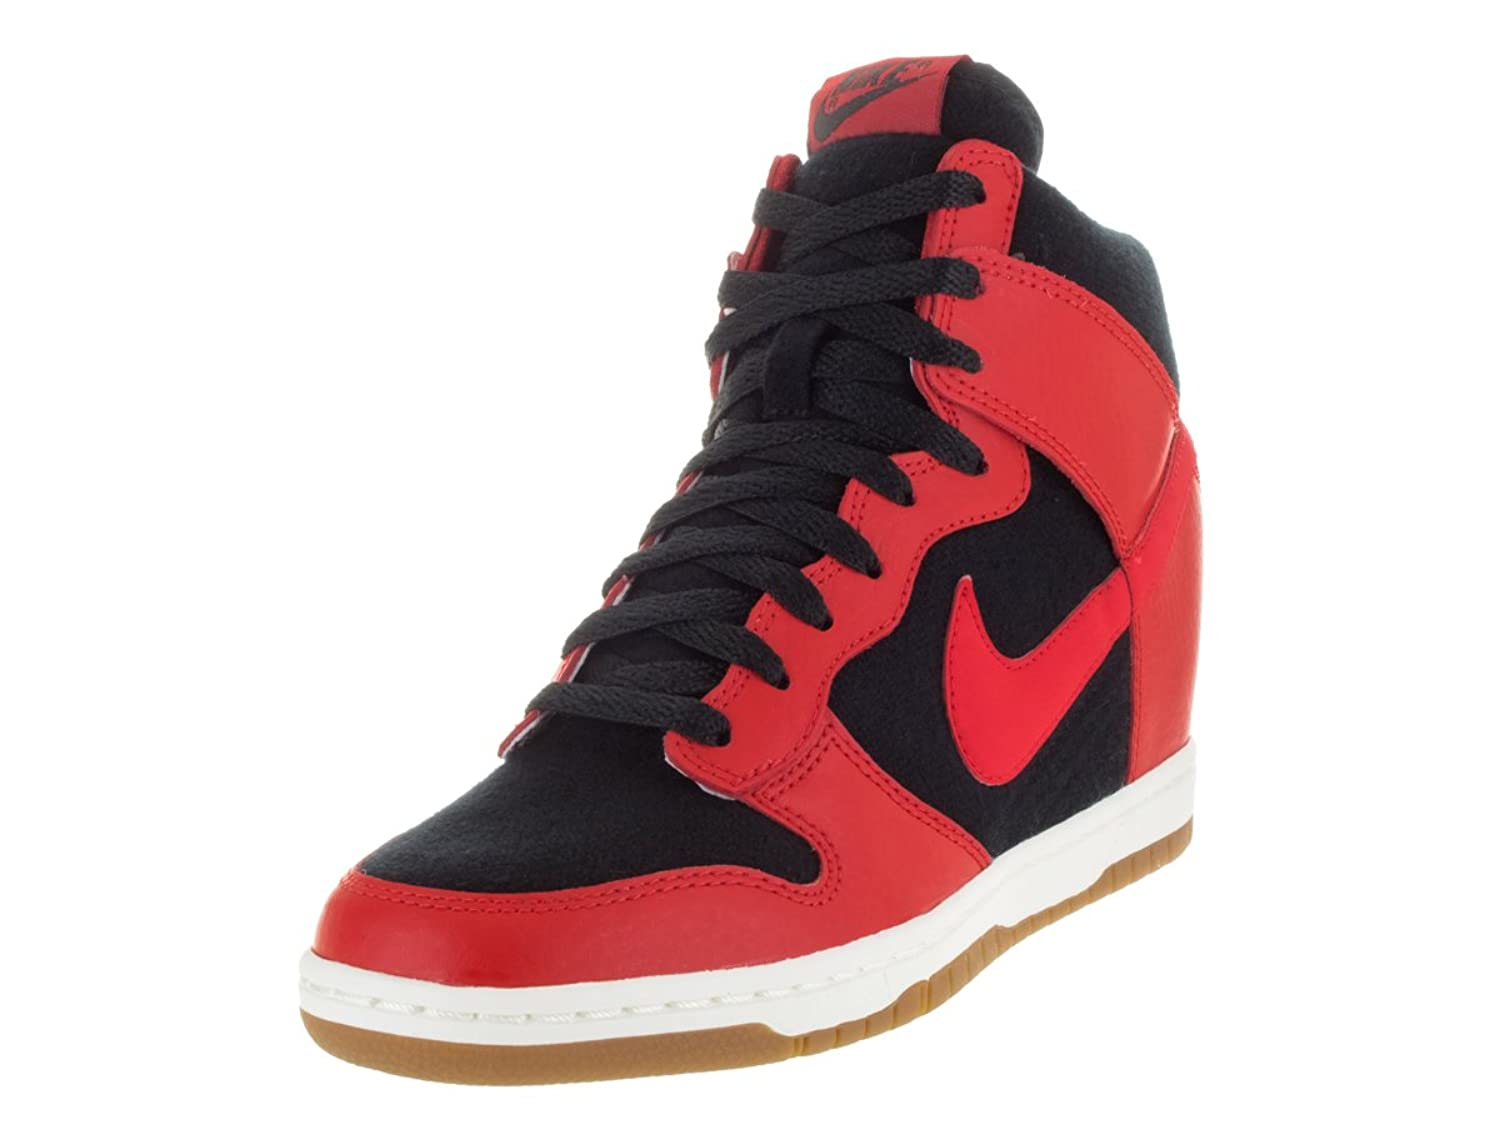 online store 9d6ed f7516 Amazon.com   Nike Womens Dunk Sky Hi Essential Black University  Red Sail Black Casual Shoe 7.5 Women US   Basketball